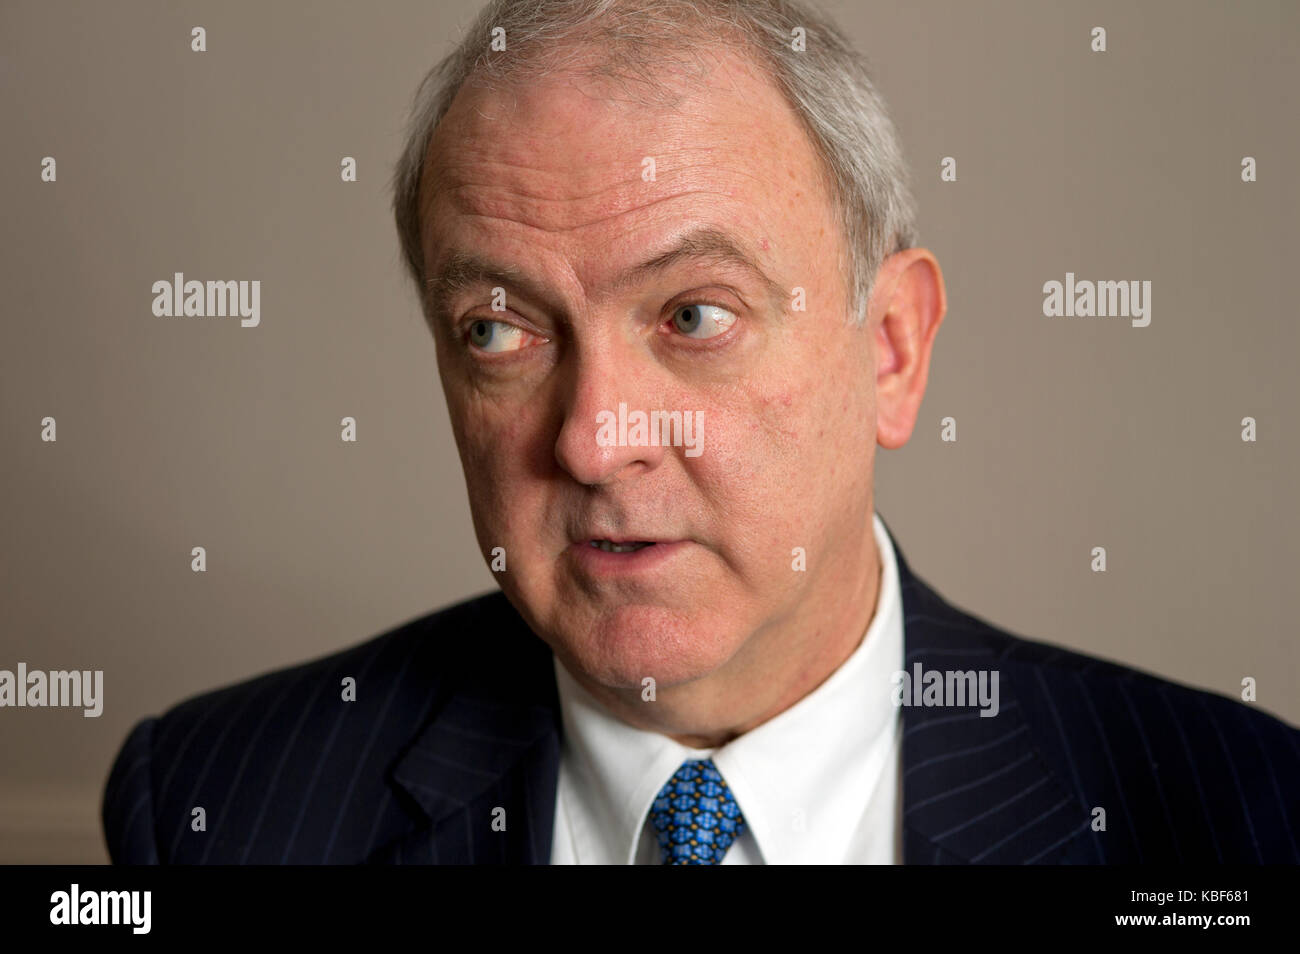 Sir Bruce Keogh, Clinical Director of the National Health Service. - Stock Image